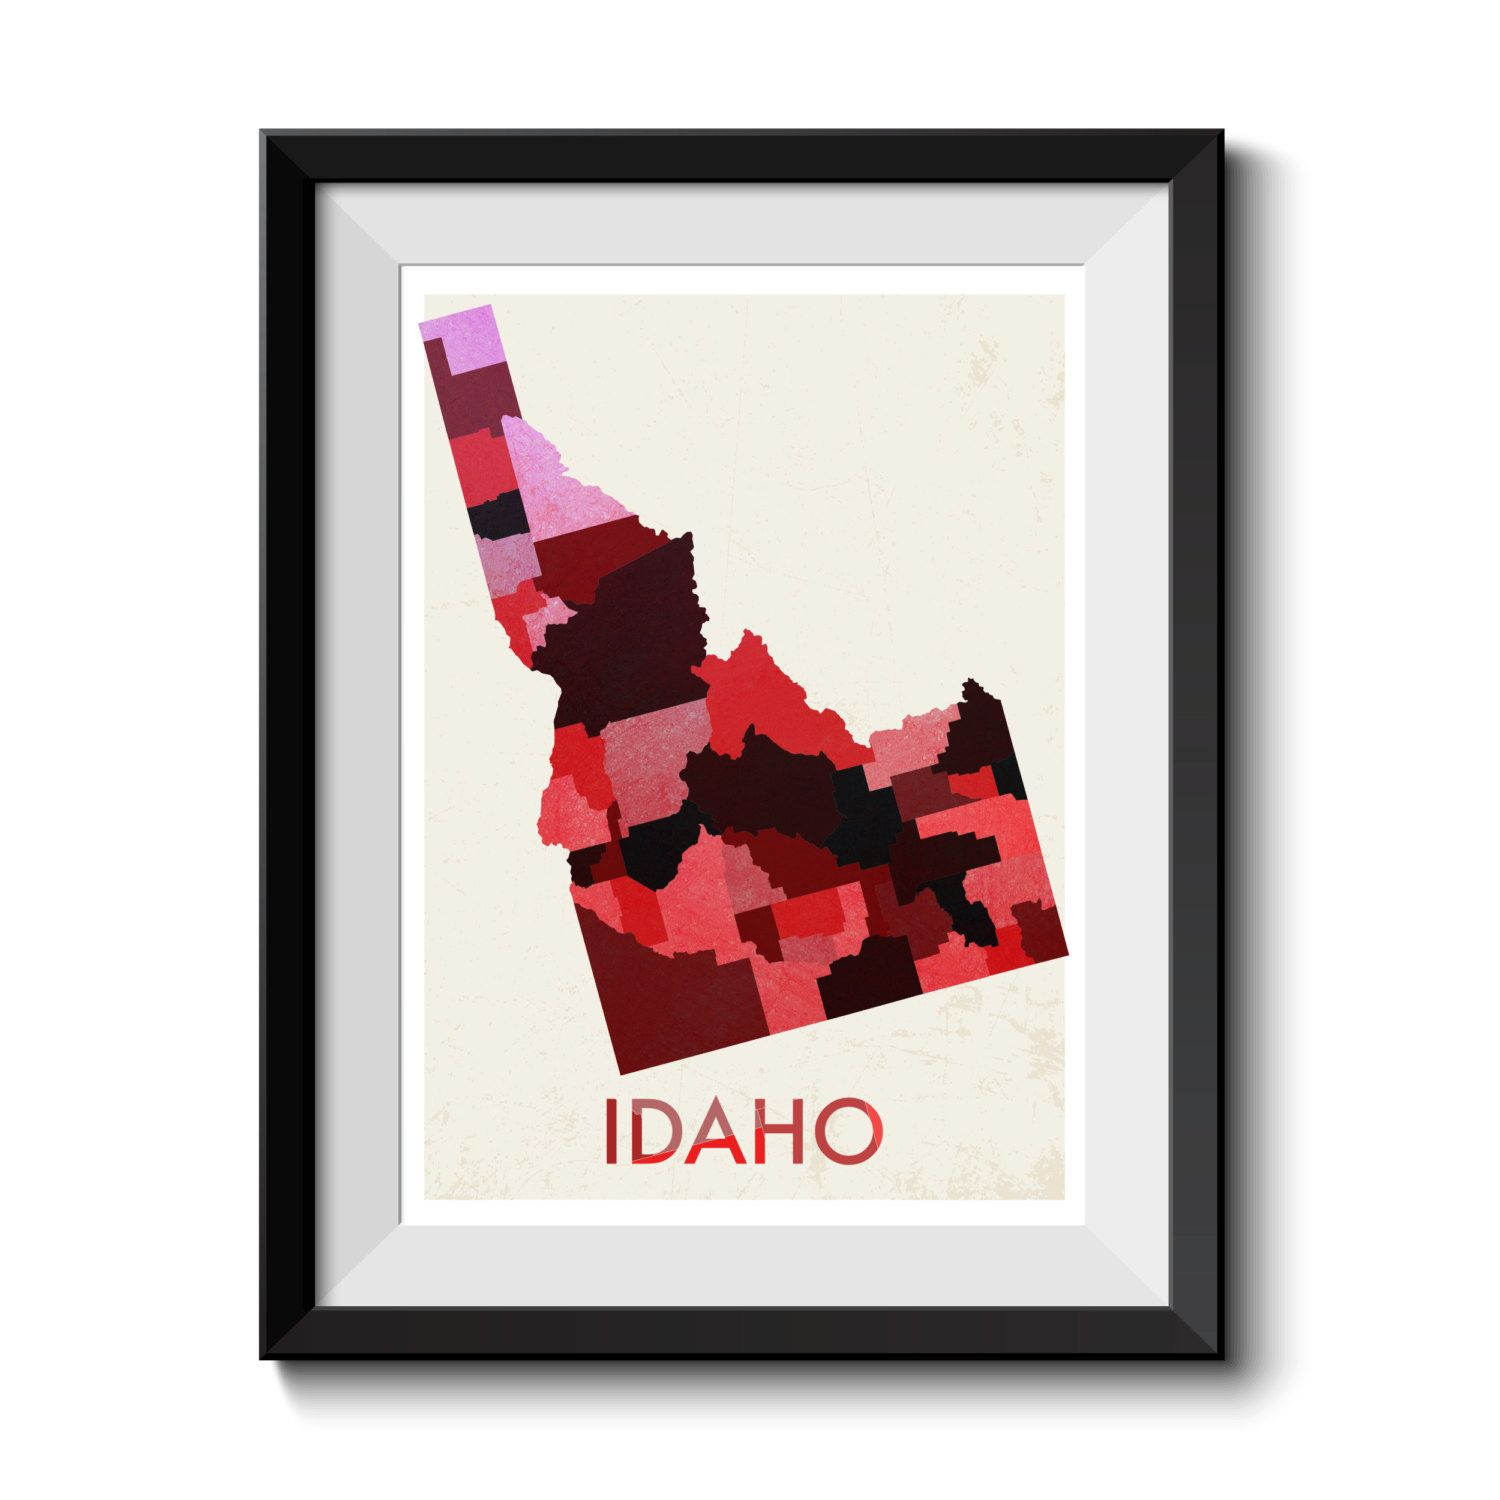 Idaho Map Print. Map Poster. State Poster. Huge sizes available. Printed Canvas Also Available. by MappedMoments on Etsy